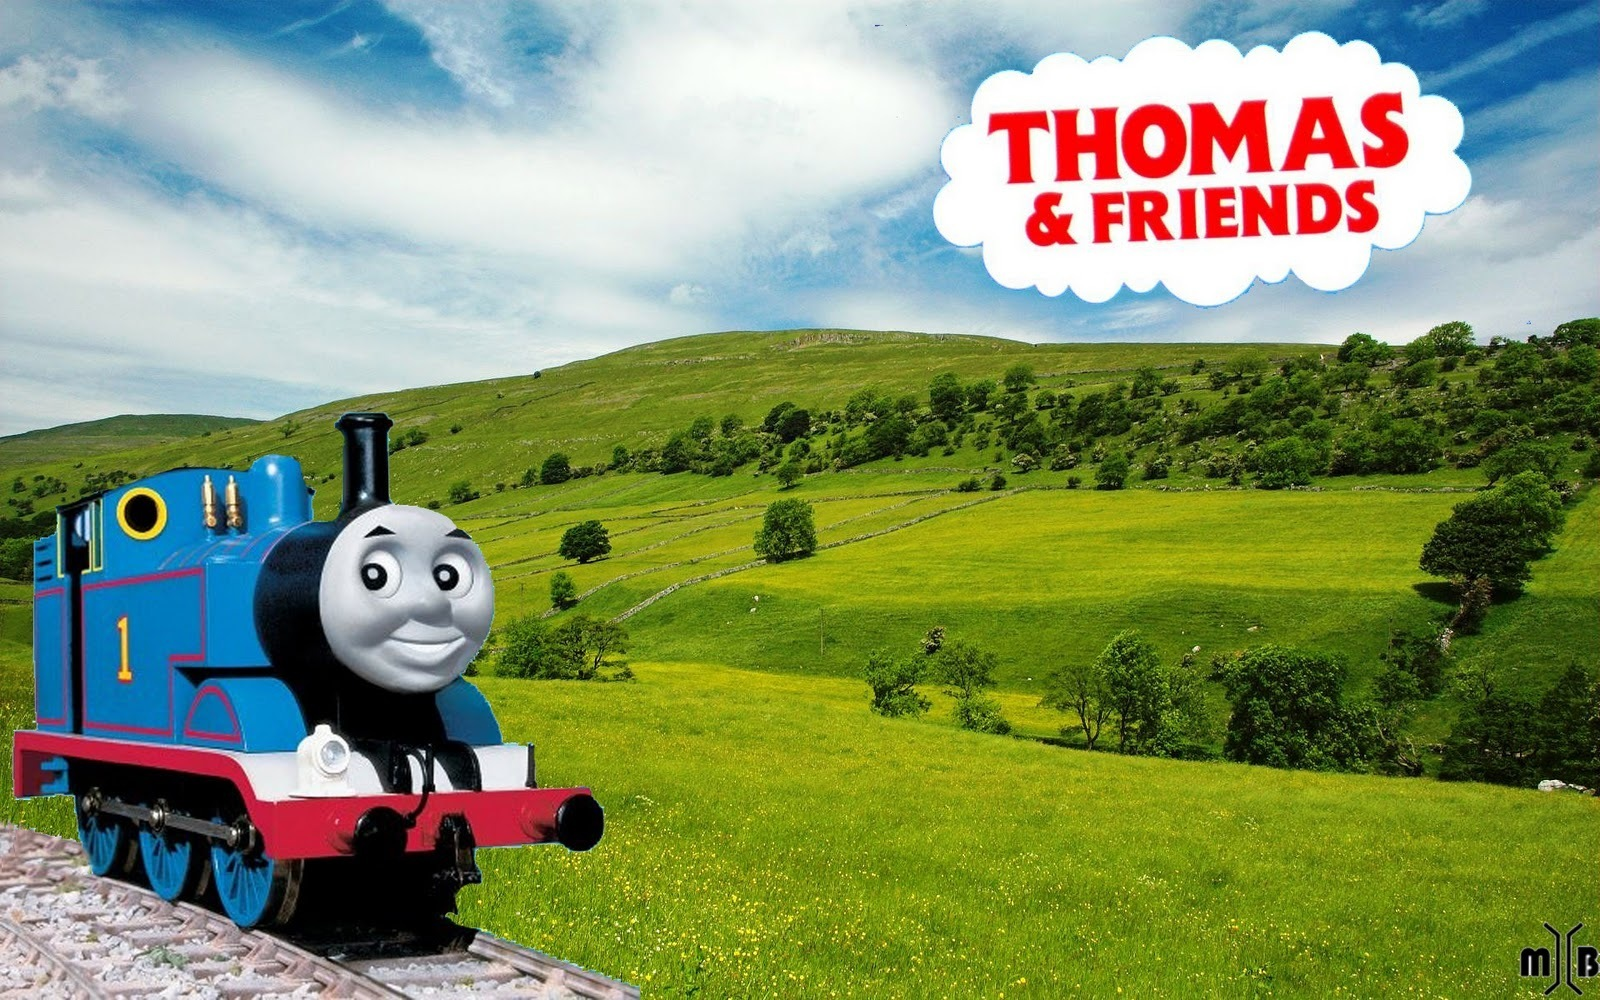 50 Thomas Train Wallpaper On Wallpapersafari